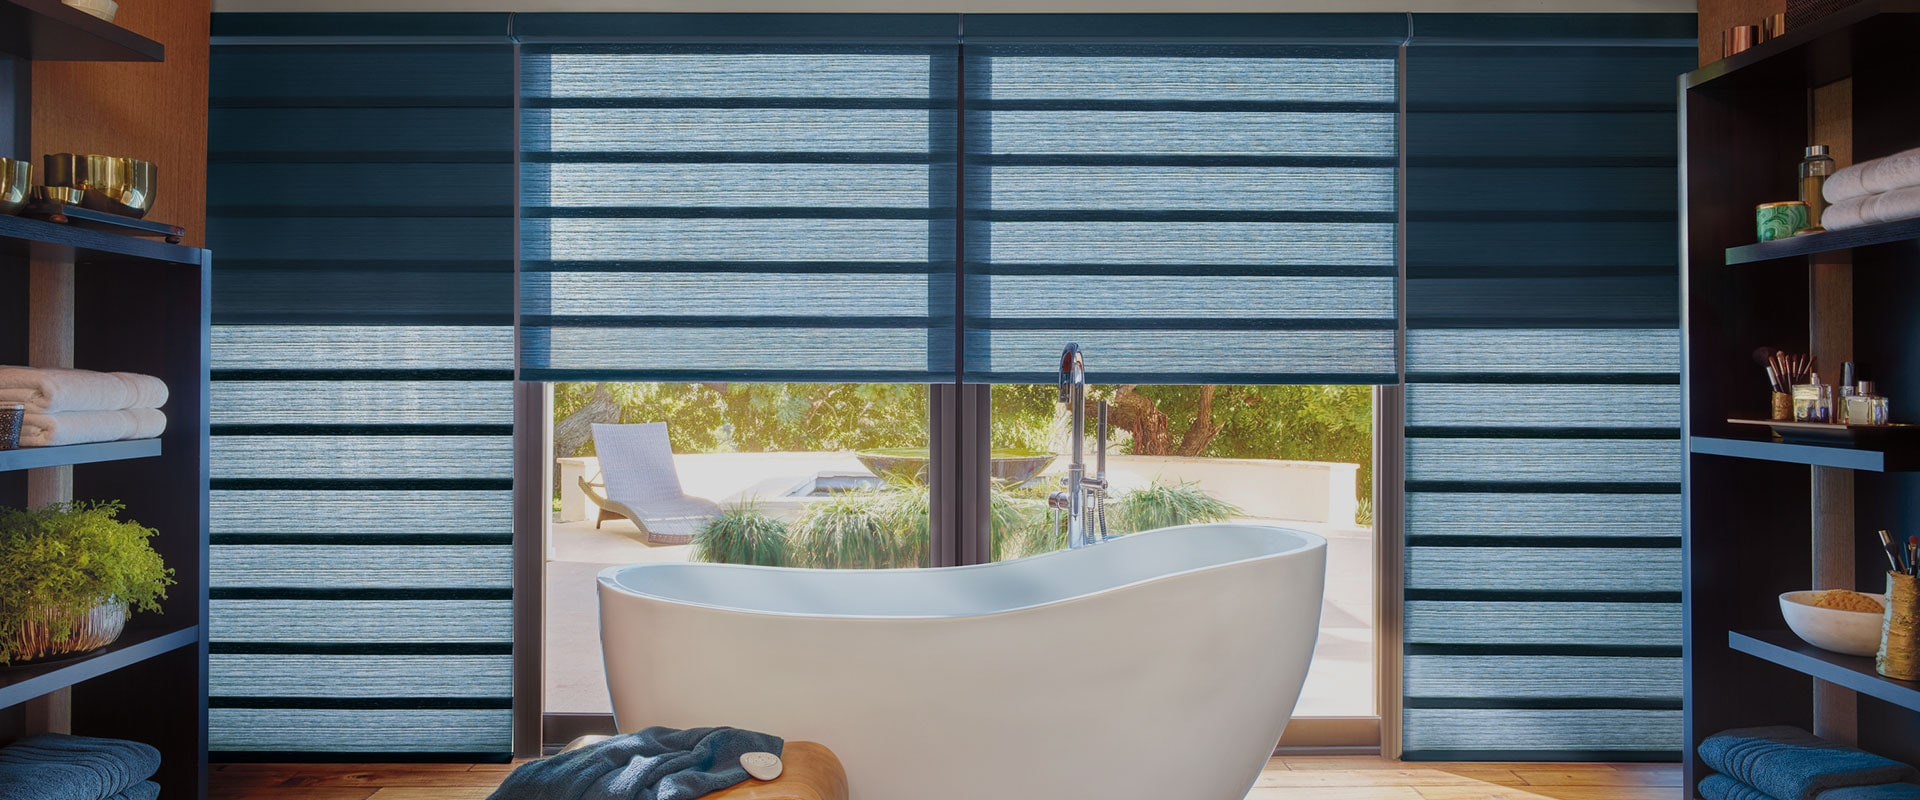 Window Blinds Window Coverings Shades Shutters